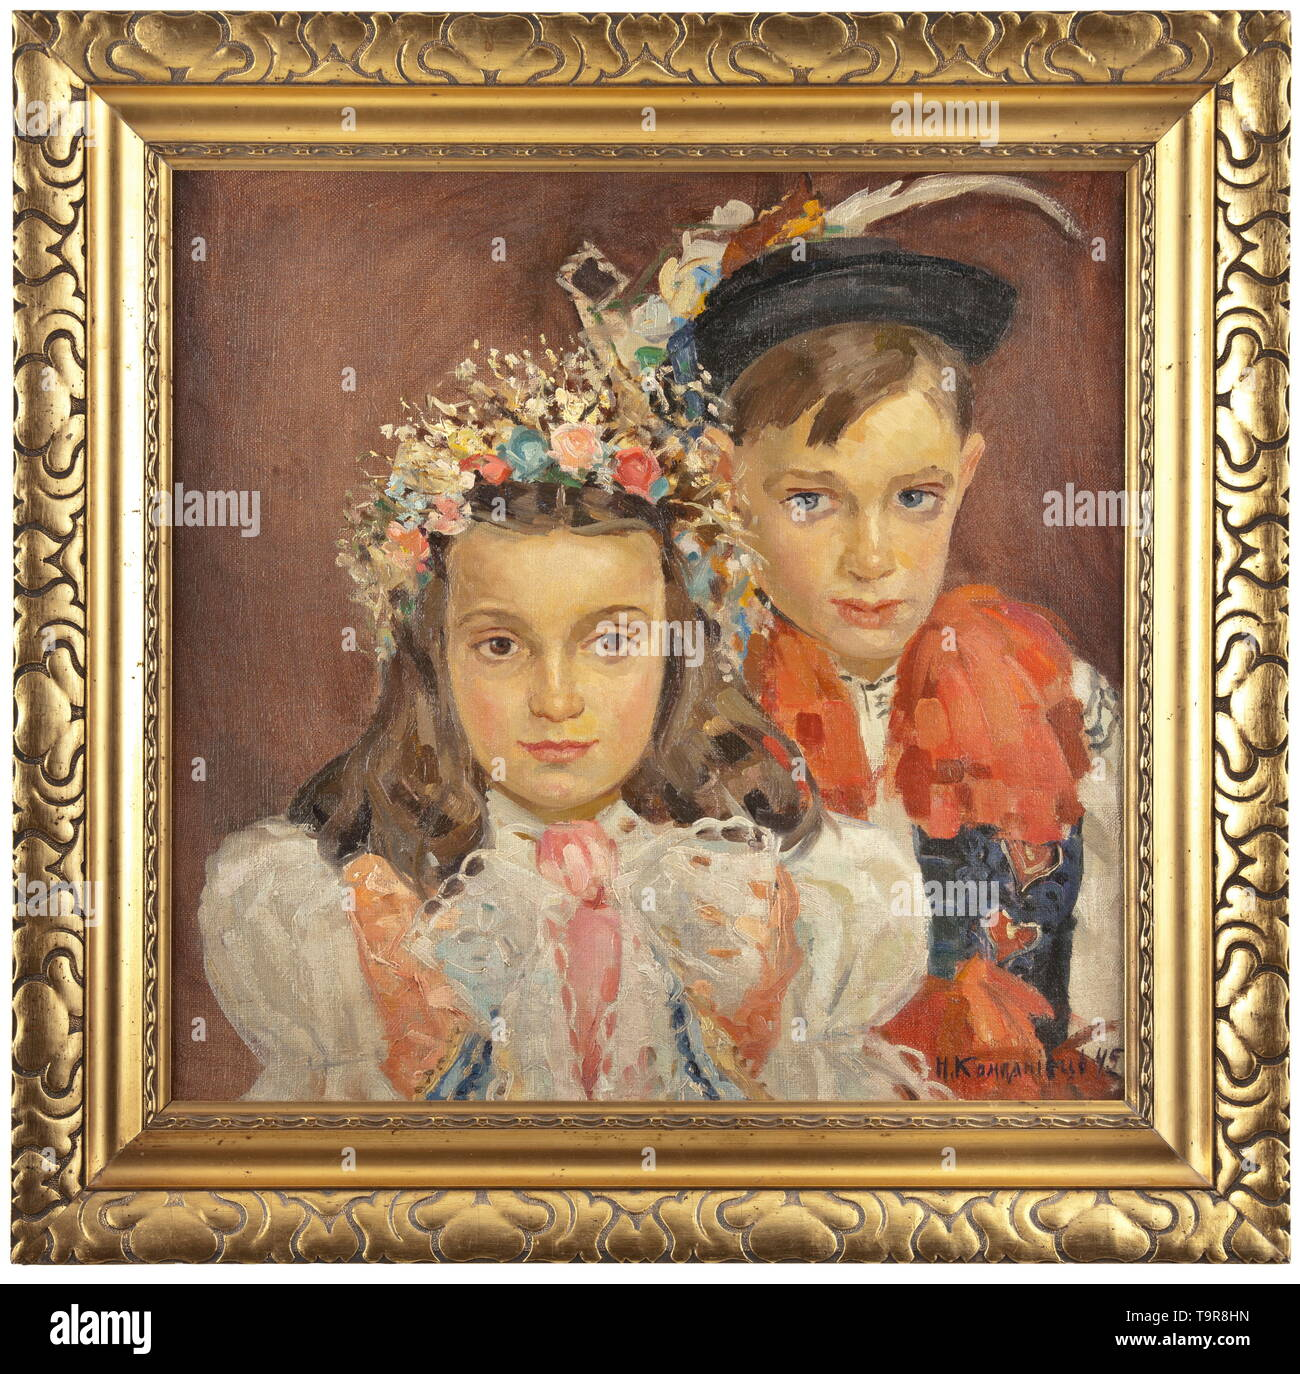 """Nadezhda Dmitrievna Kompaniets-Kiyantshenko (1913 - 2003) - a portrait of two children in carnival costumes Oil on canvas, signed and dated """"N. Kompaniets 45"""" in Cyrillic on the lower left. In the original gilt wooden frame. Dimensions of painting 50 x 50 cm, dimensions of frame 64 x 65.5 cm. Comes with a book listing the works of the painter and her painter family and including a handwritten dedication by the painter's son. Publishing house Kiev 2008. Nadezhda Dmitrievna Kompaniets-Kiyantshenko (1913 - 2003) was a well-known Russian/Ukrainian pa, Additional-Rights-Clearance-Info-Not-Available Stock Photo"""